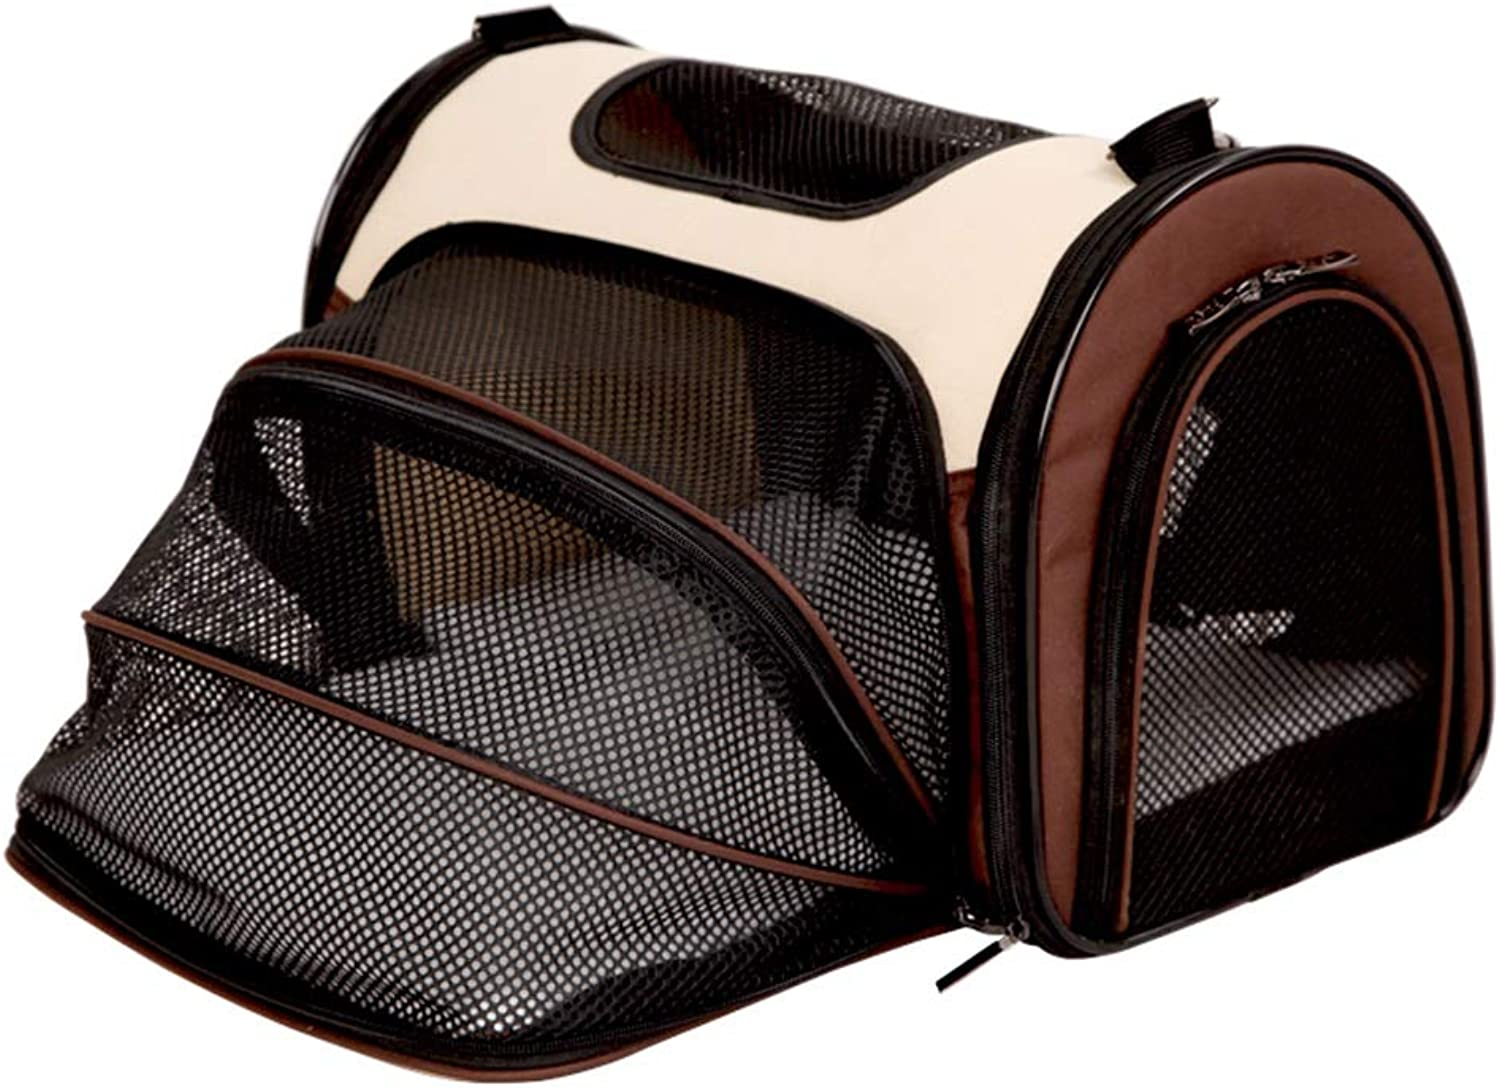 Carrier Travel Bag Breathable Premium Airline Approved Expandable Pet Carrier by Pet Expansion, Designed for Cat, Dog (50 x 30 x 27CM)